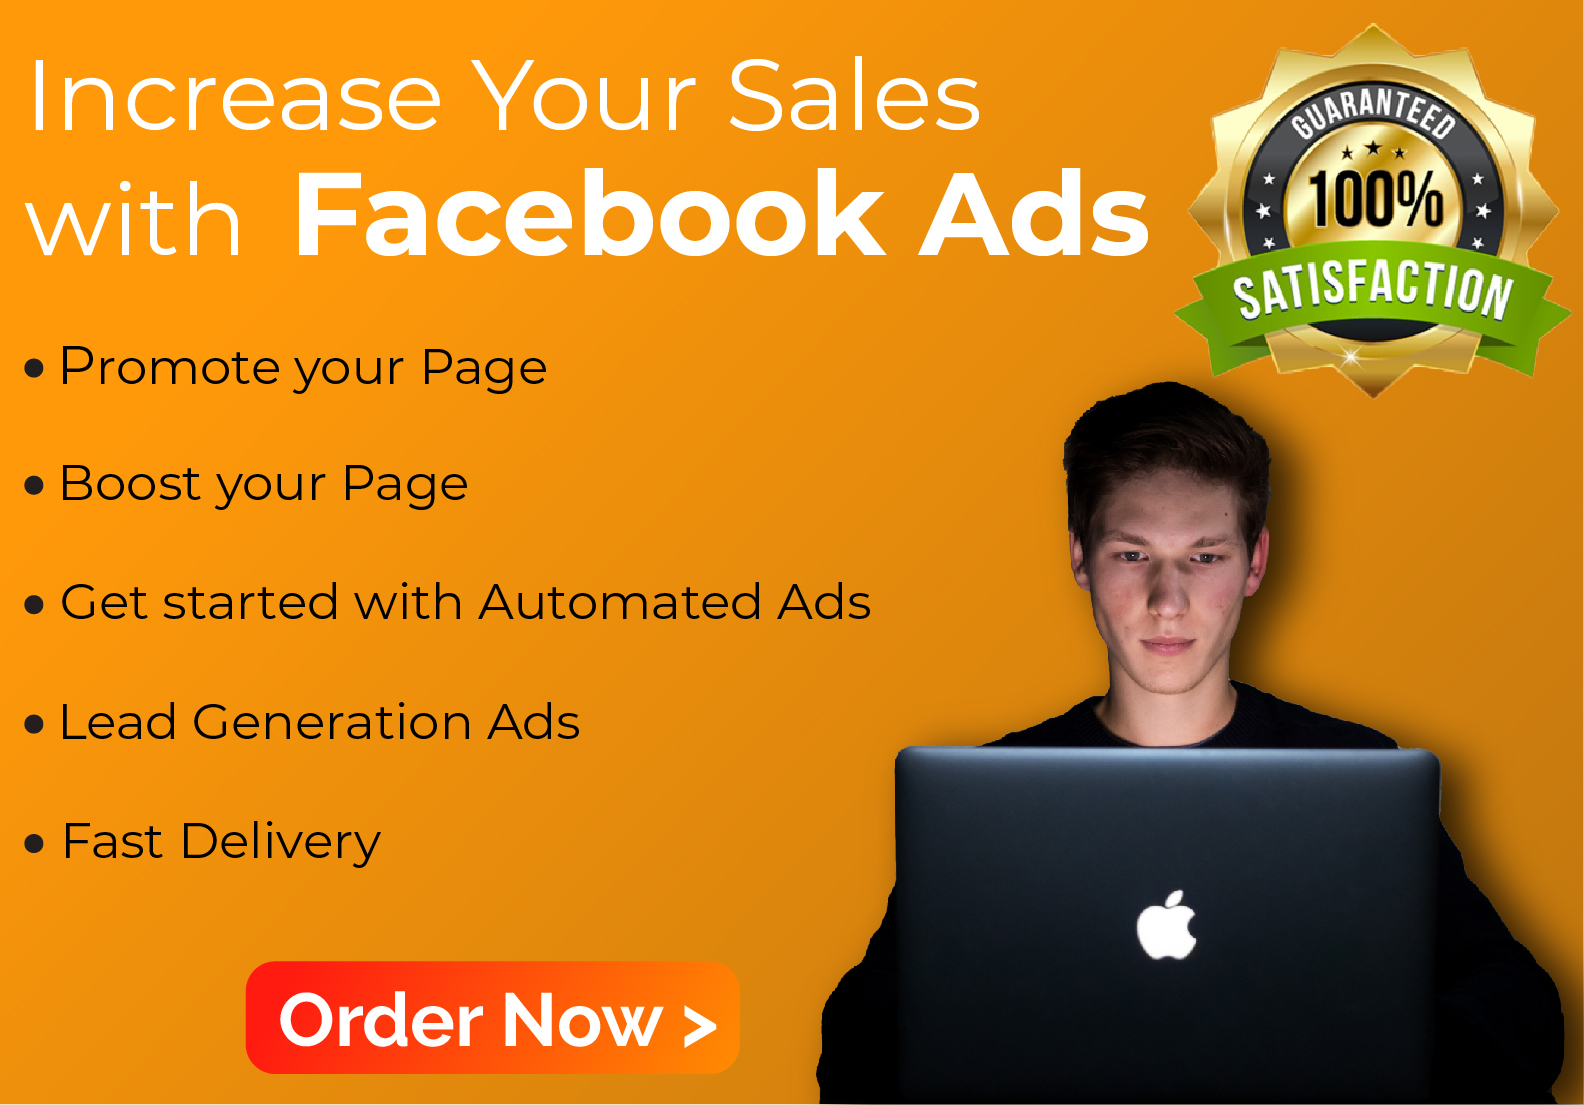 I will be your Facebook Ads campaign manager and run fb ads campaign